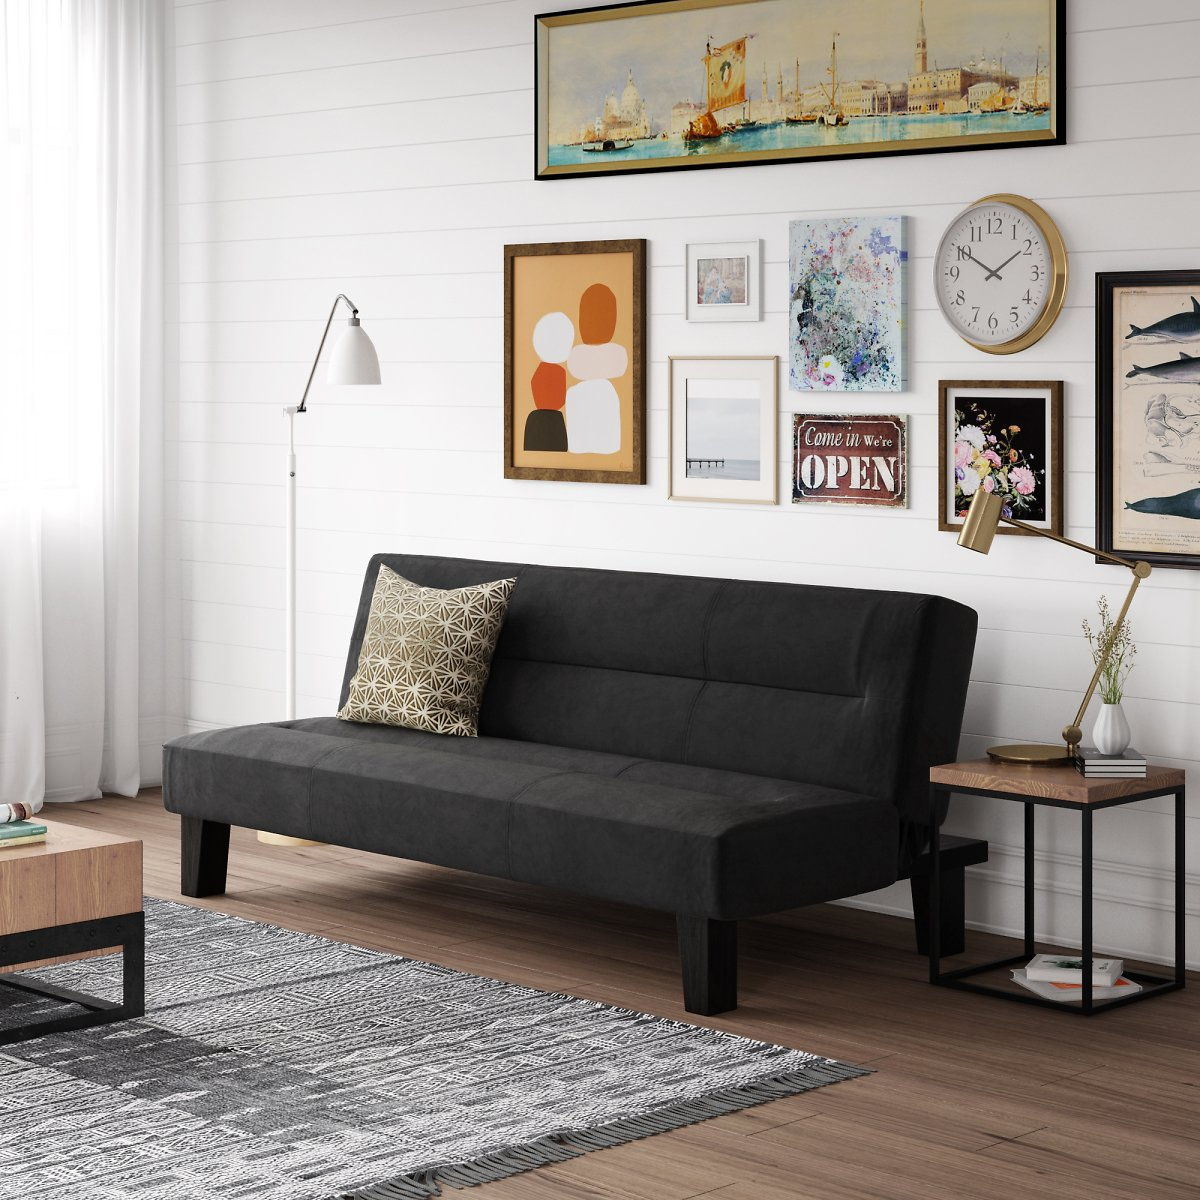 Kebo Futon Couch (5 Colors) + Ships Free